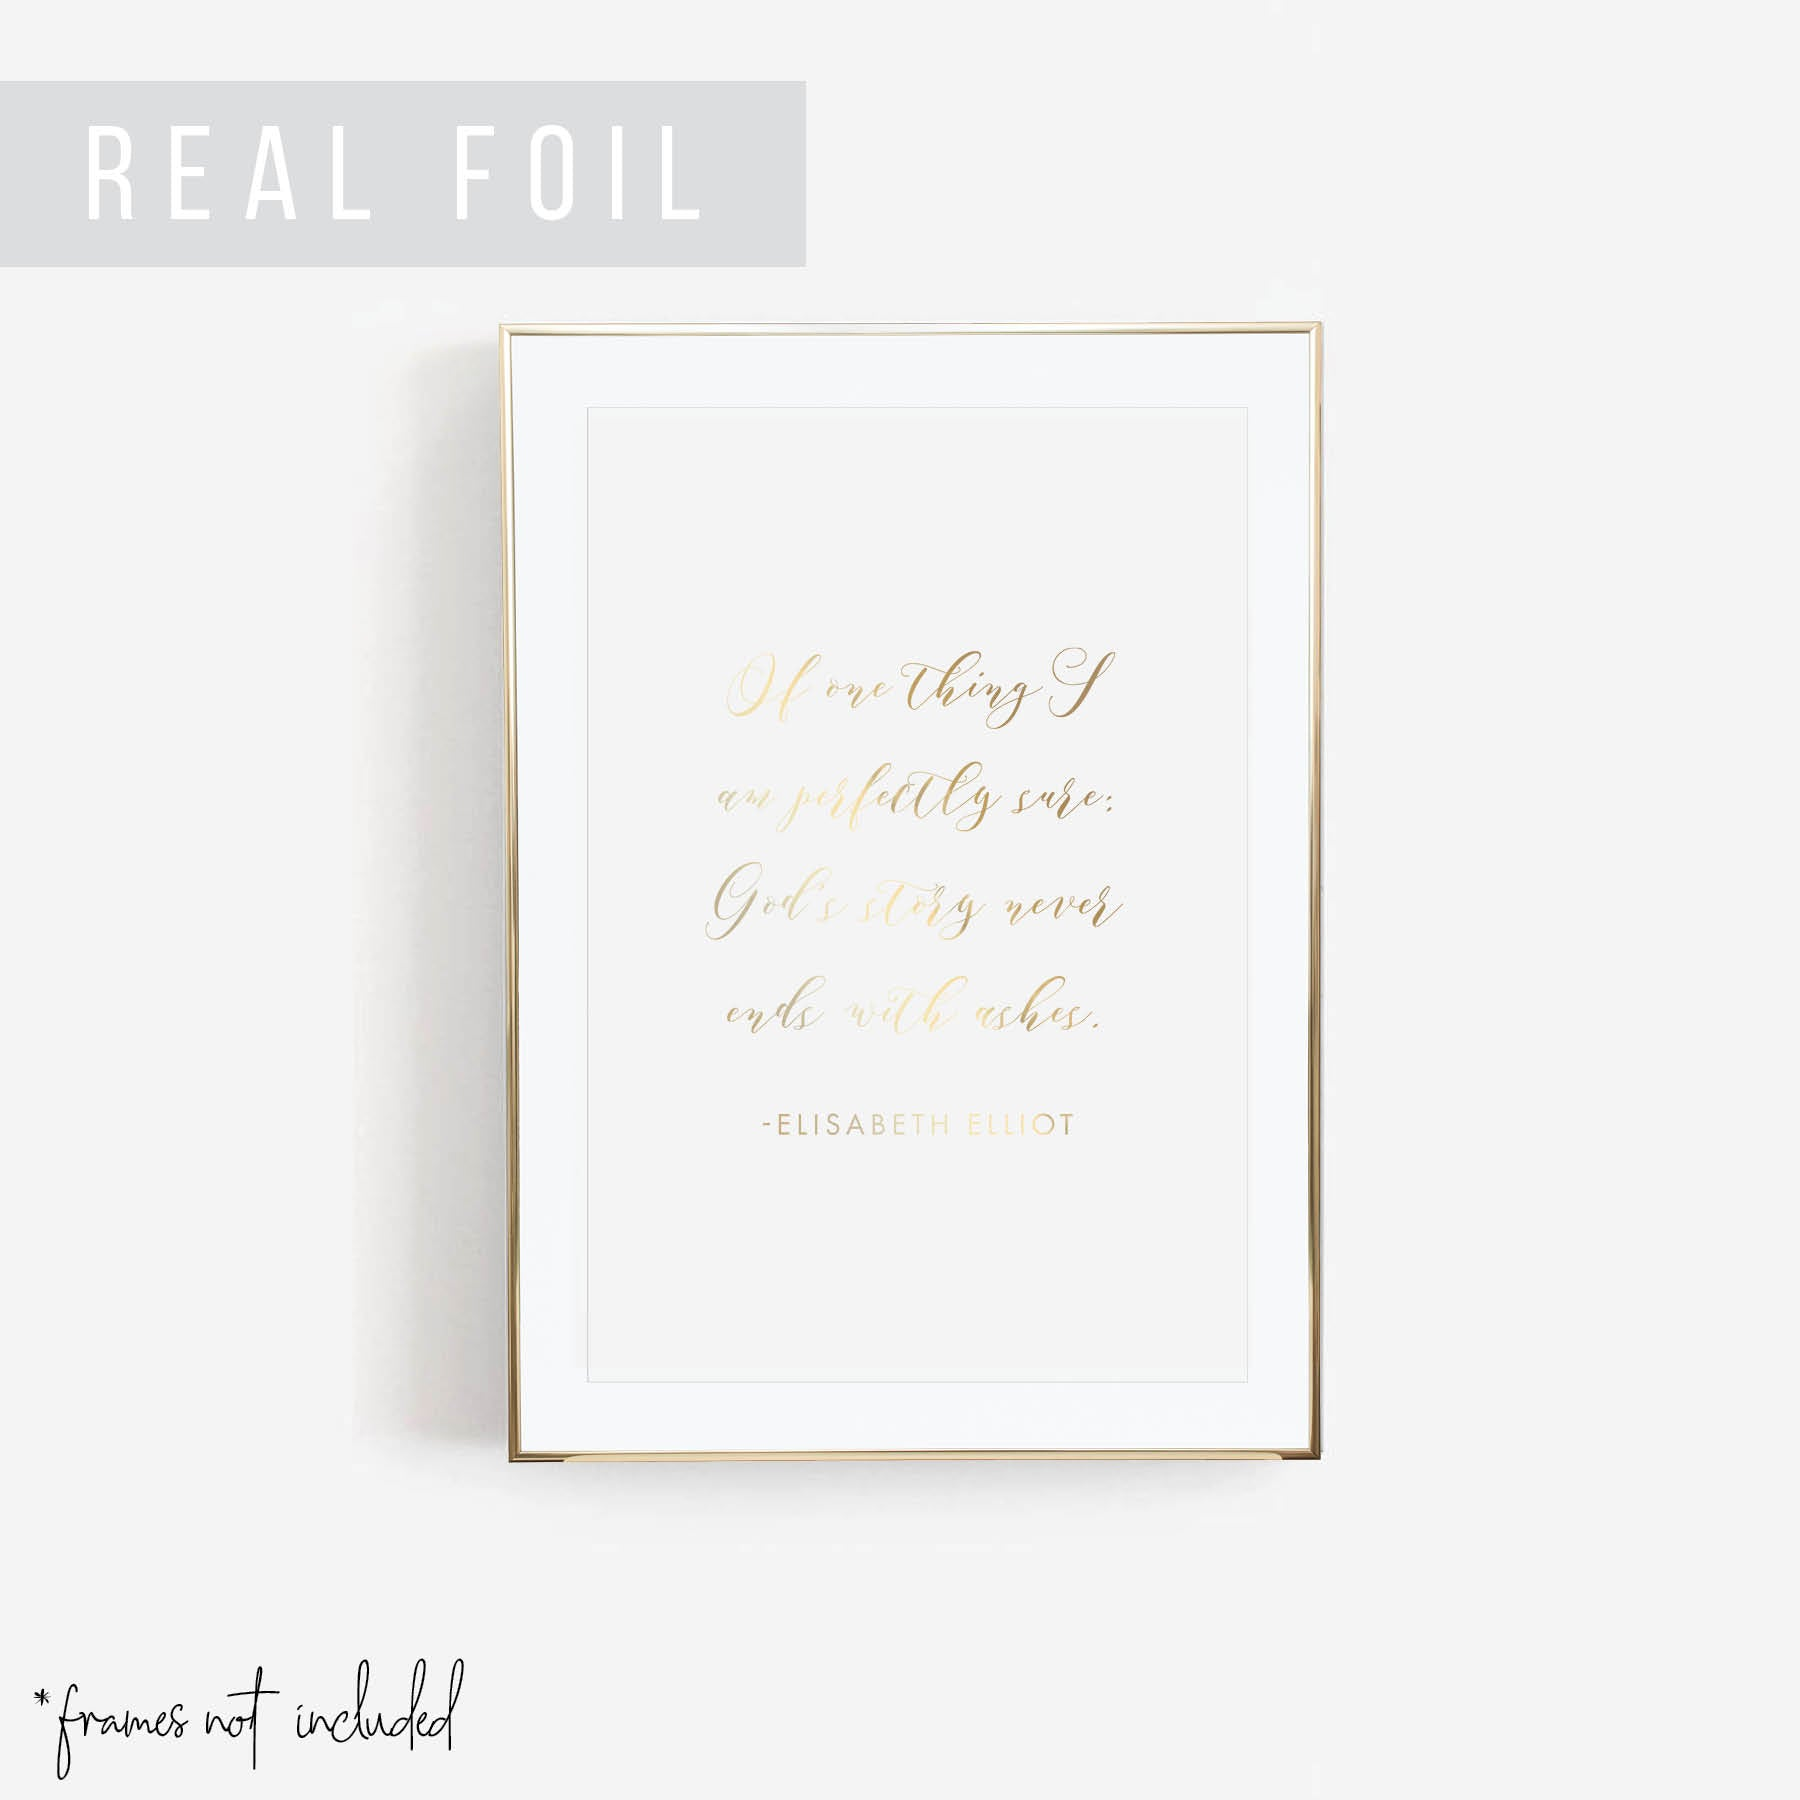 Of One Thing I Am Perfectly Sure: God's Story Never Ends with Ashes. -Elisabeth Elliot Quote Foiled Art Print